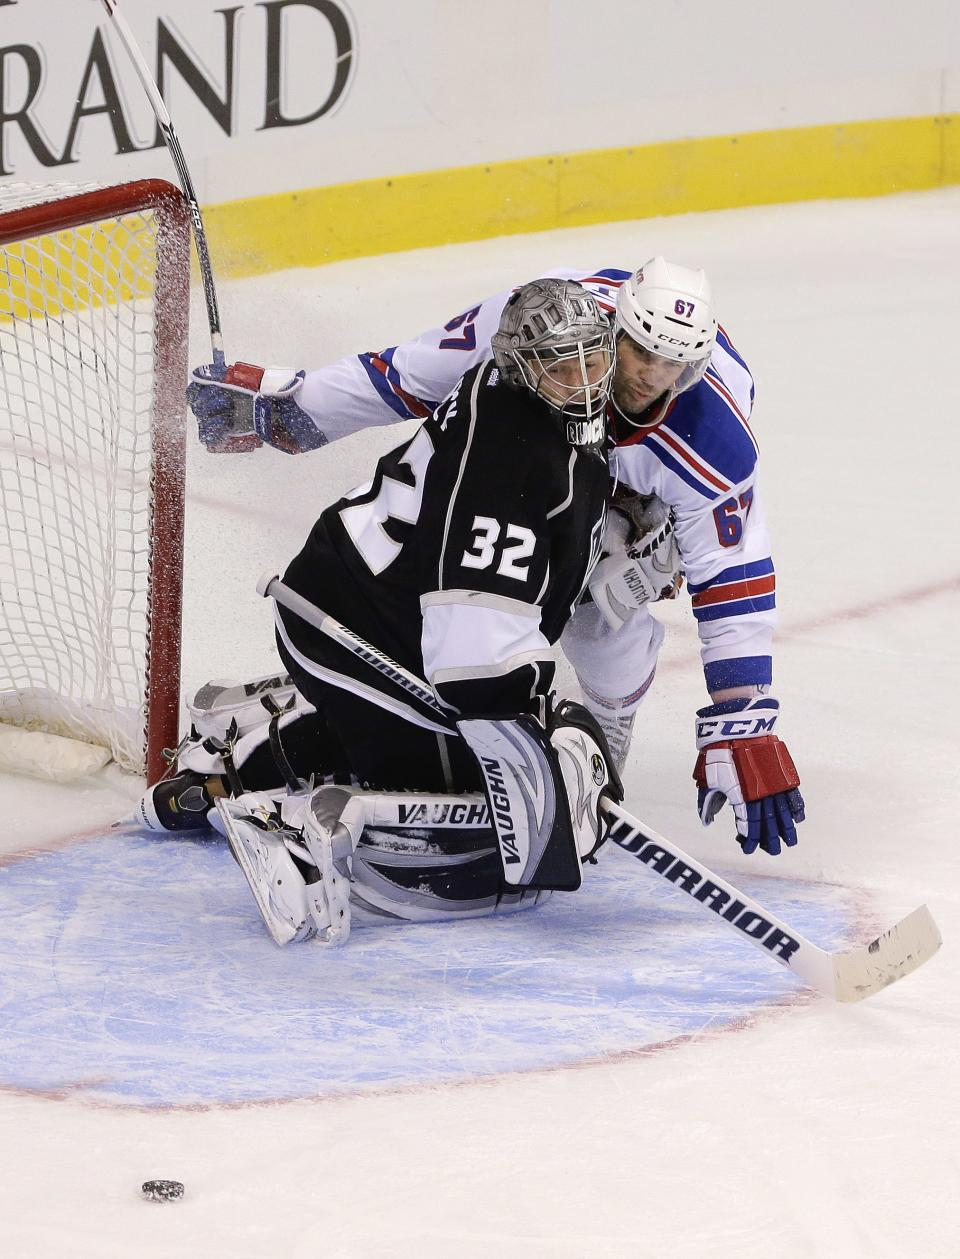 Kopitar gets quick goal as Kings beat Rangers 4-1